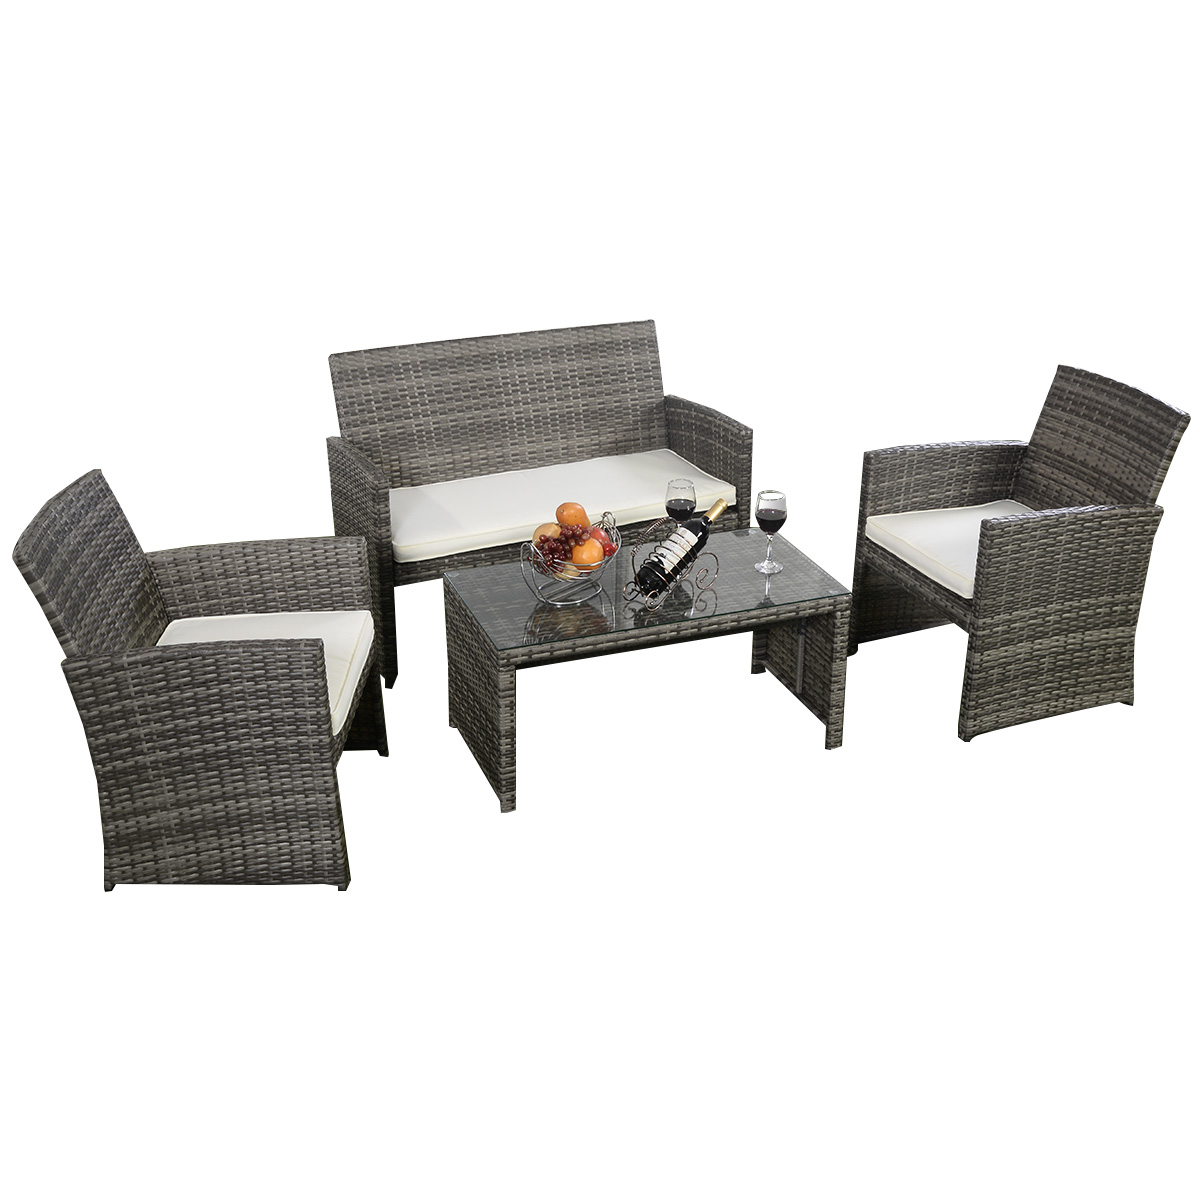 Costway 4 Pc Rattan Patio Furniture Set Garden Lawn Sofa Cushioned Seat Mix Gray Wicker by Costway